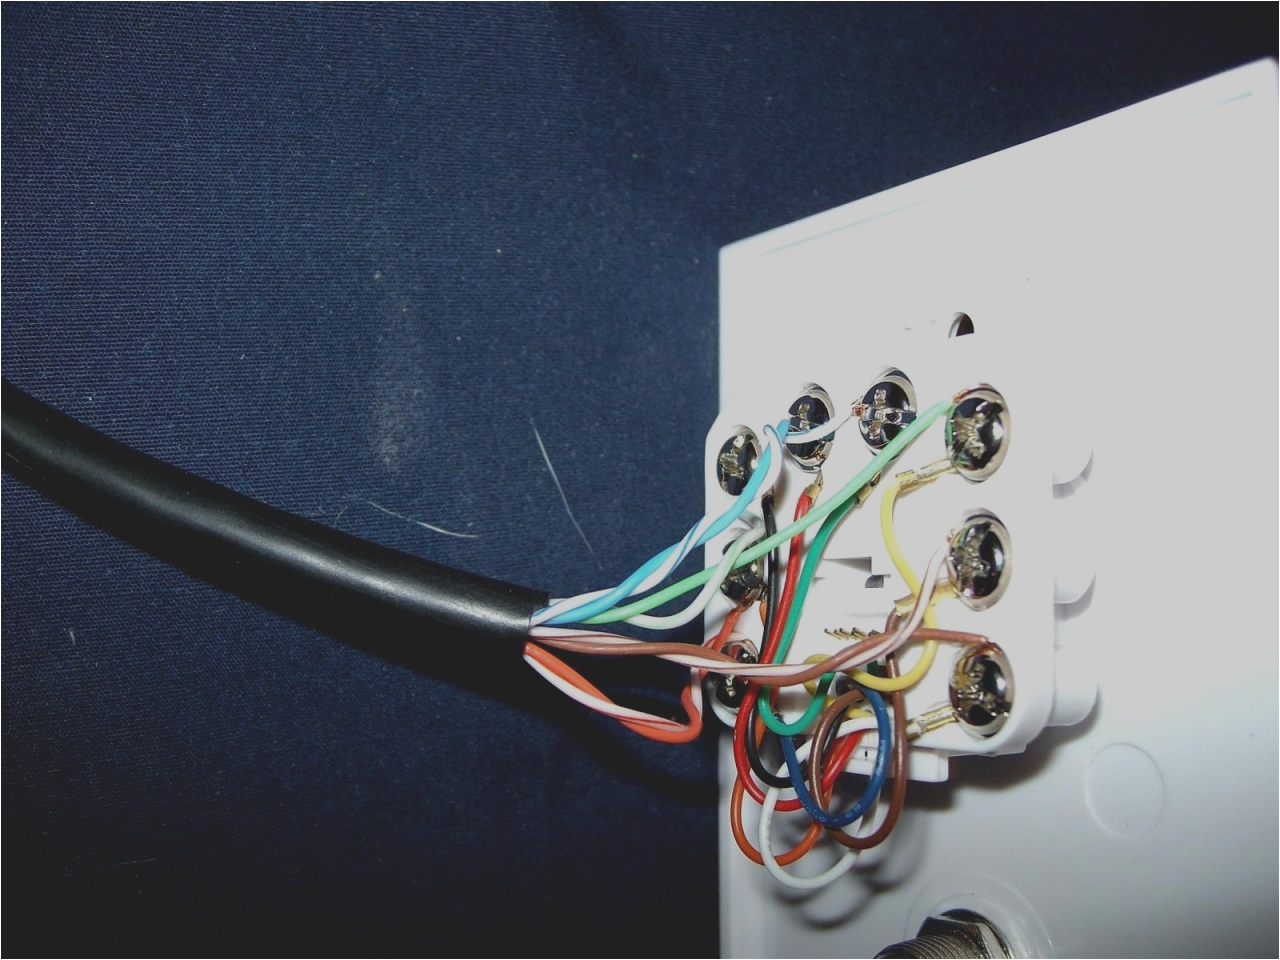 cat5 wall plate wiring diagram 27 amazing ce tech cat5e wiring diagram cat5 wall plate cat 5 jack whole also 15q jpg